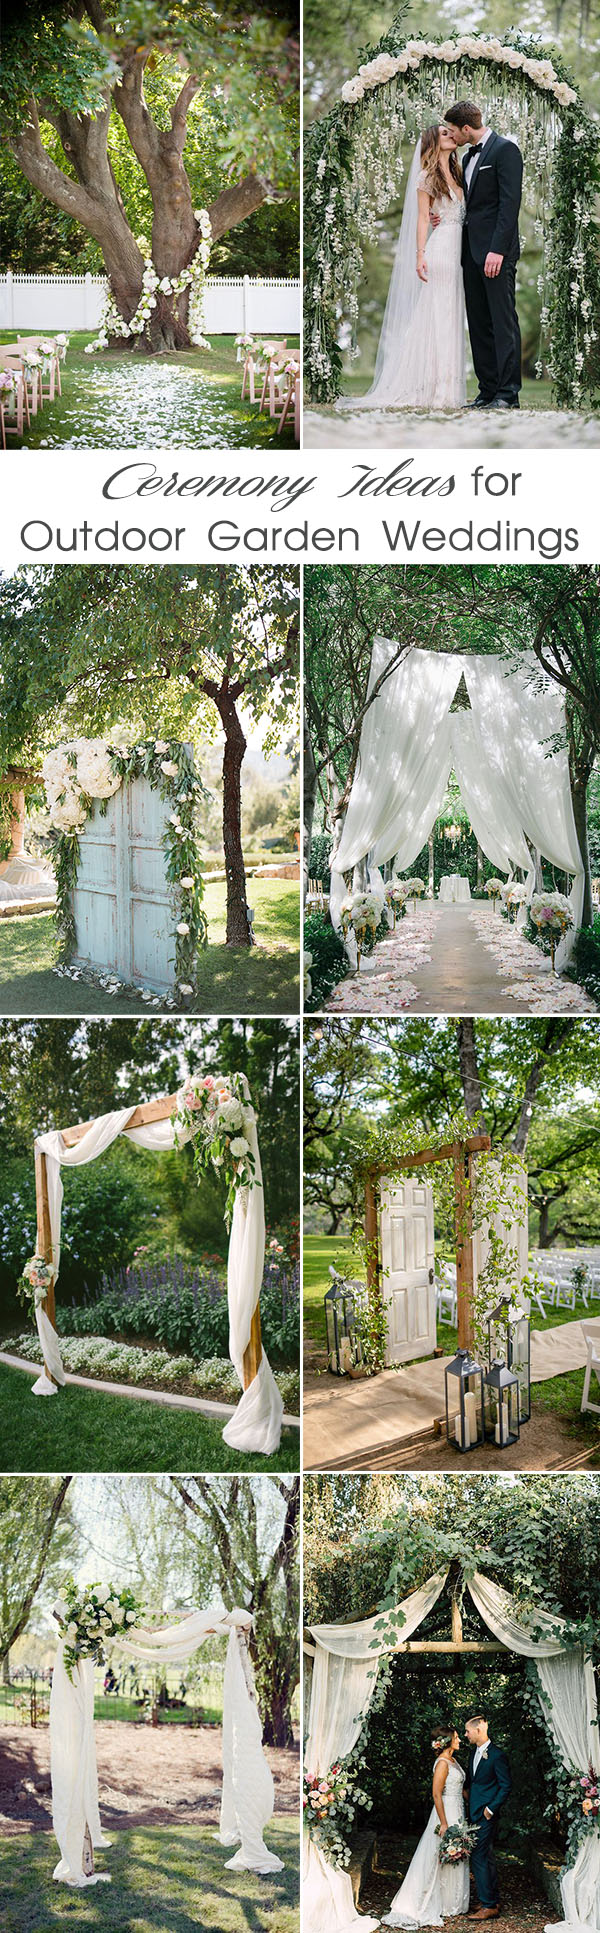 30 Sweet Ideas For Intimate Backyard Outdoor Weddings ...